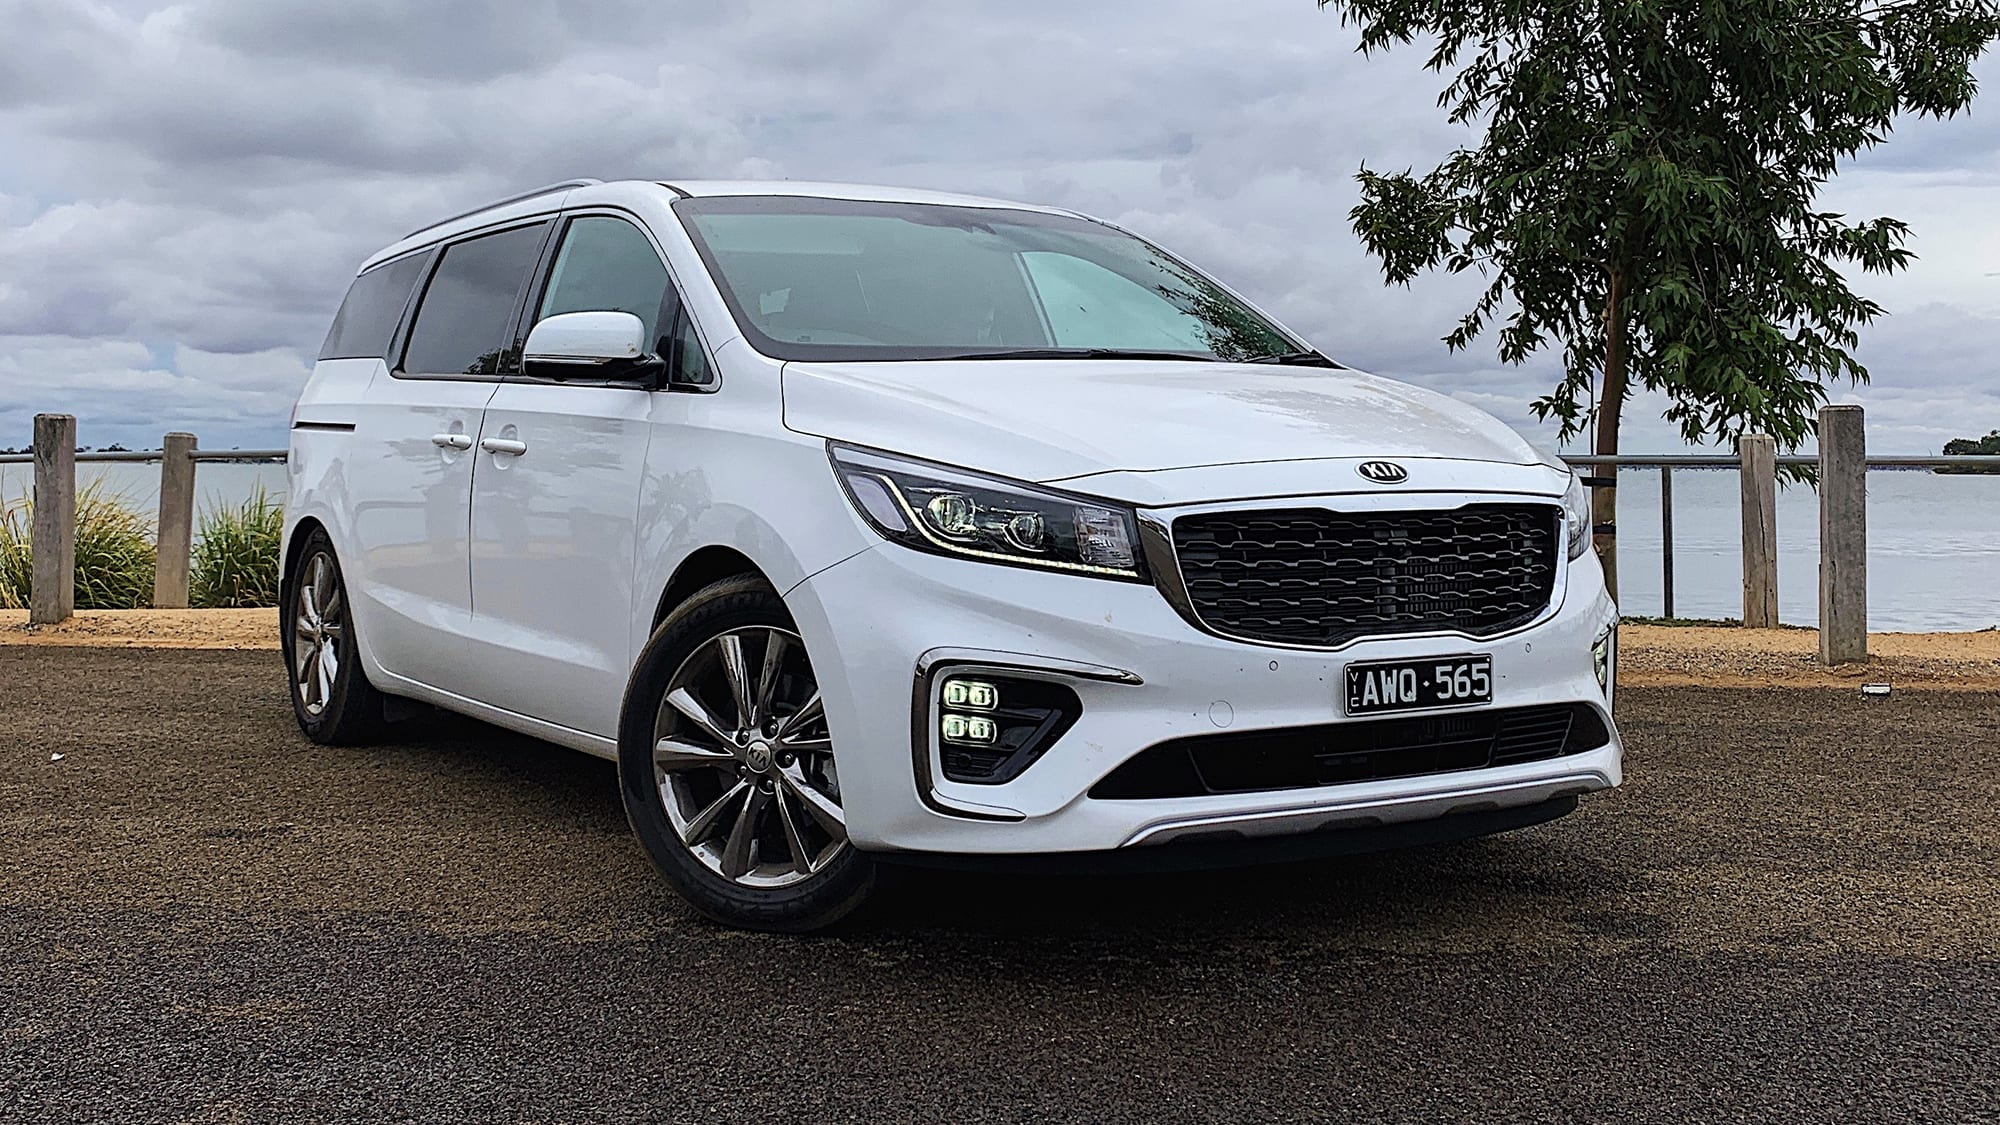 Kia's Carnival people-mover – so much polish for a large 8-seat family vehicle